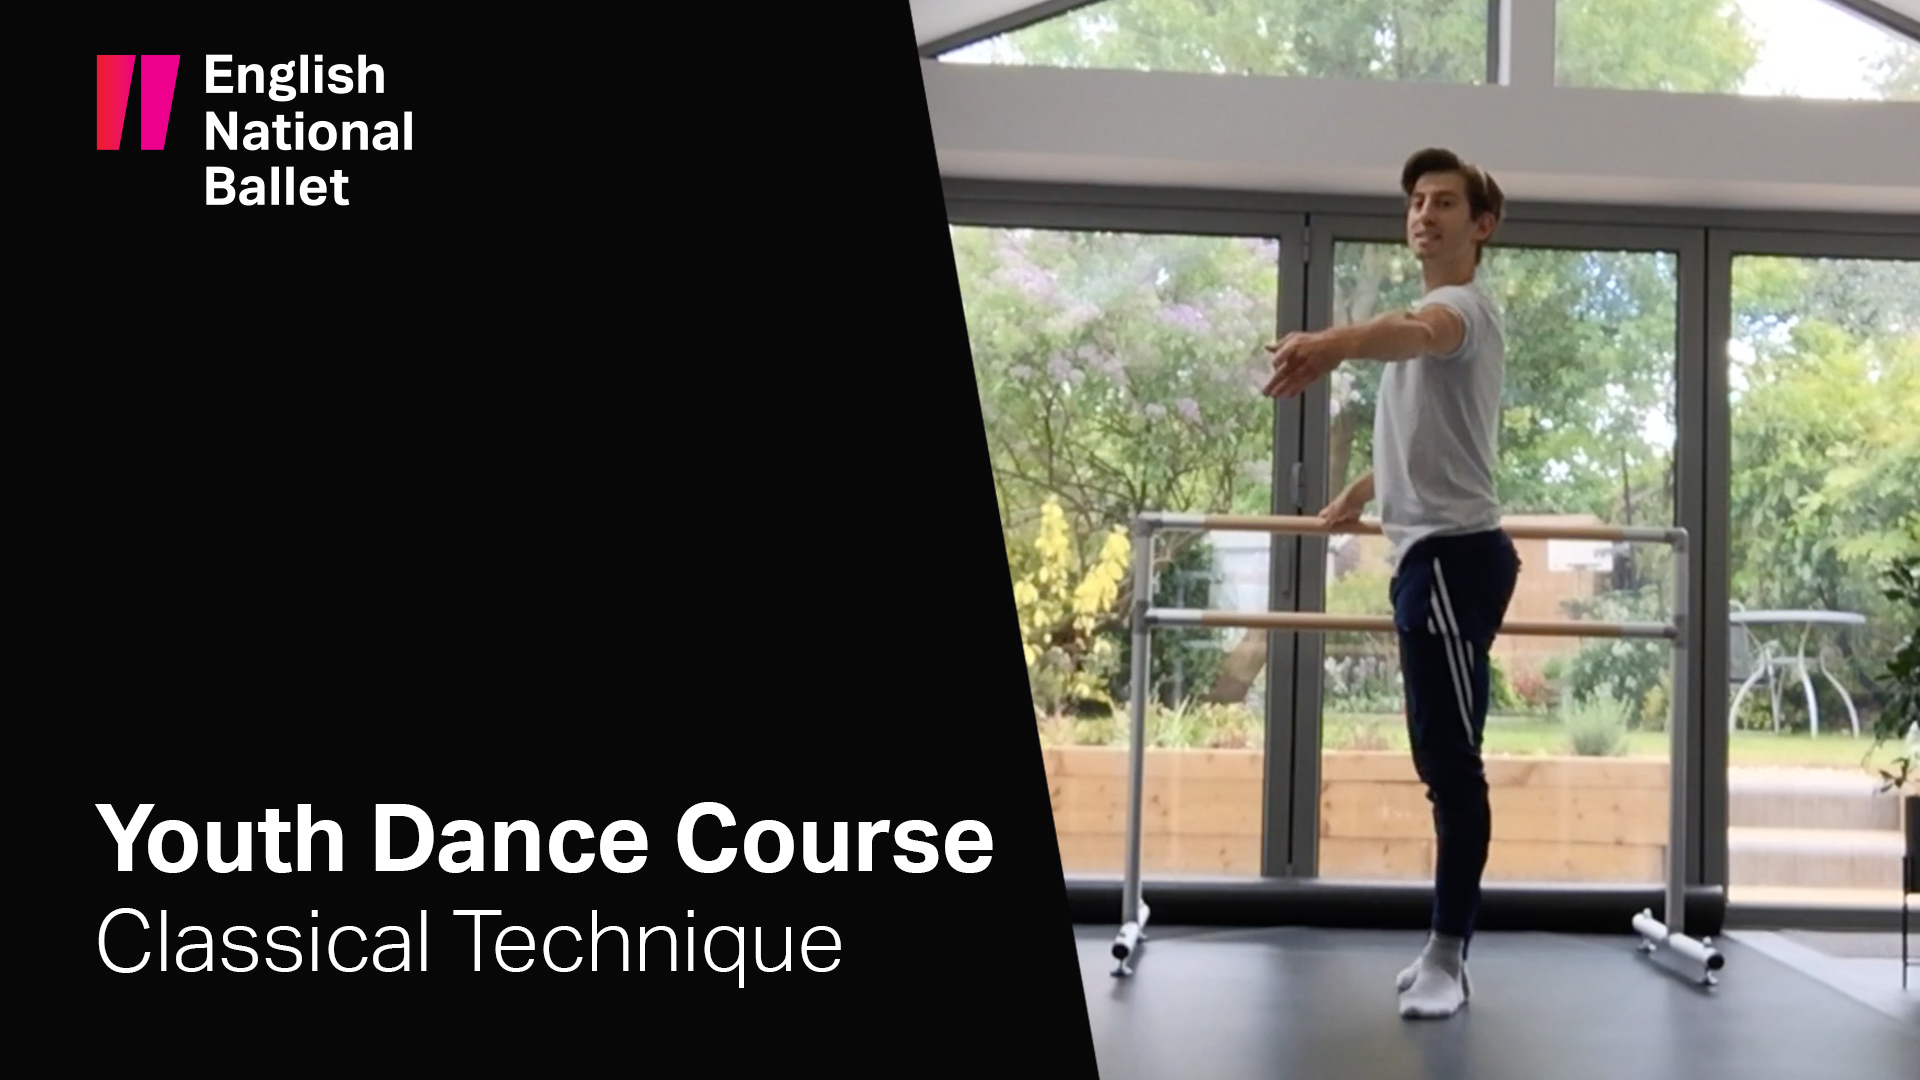 Youth Dance Course: Classical Technique with Richard Bermange | English National Ballet